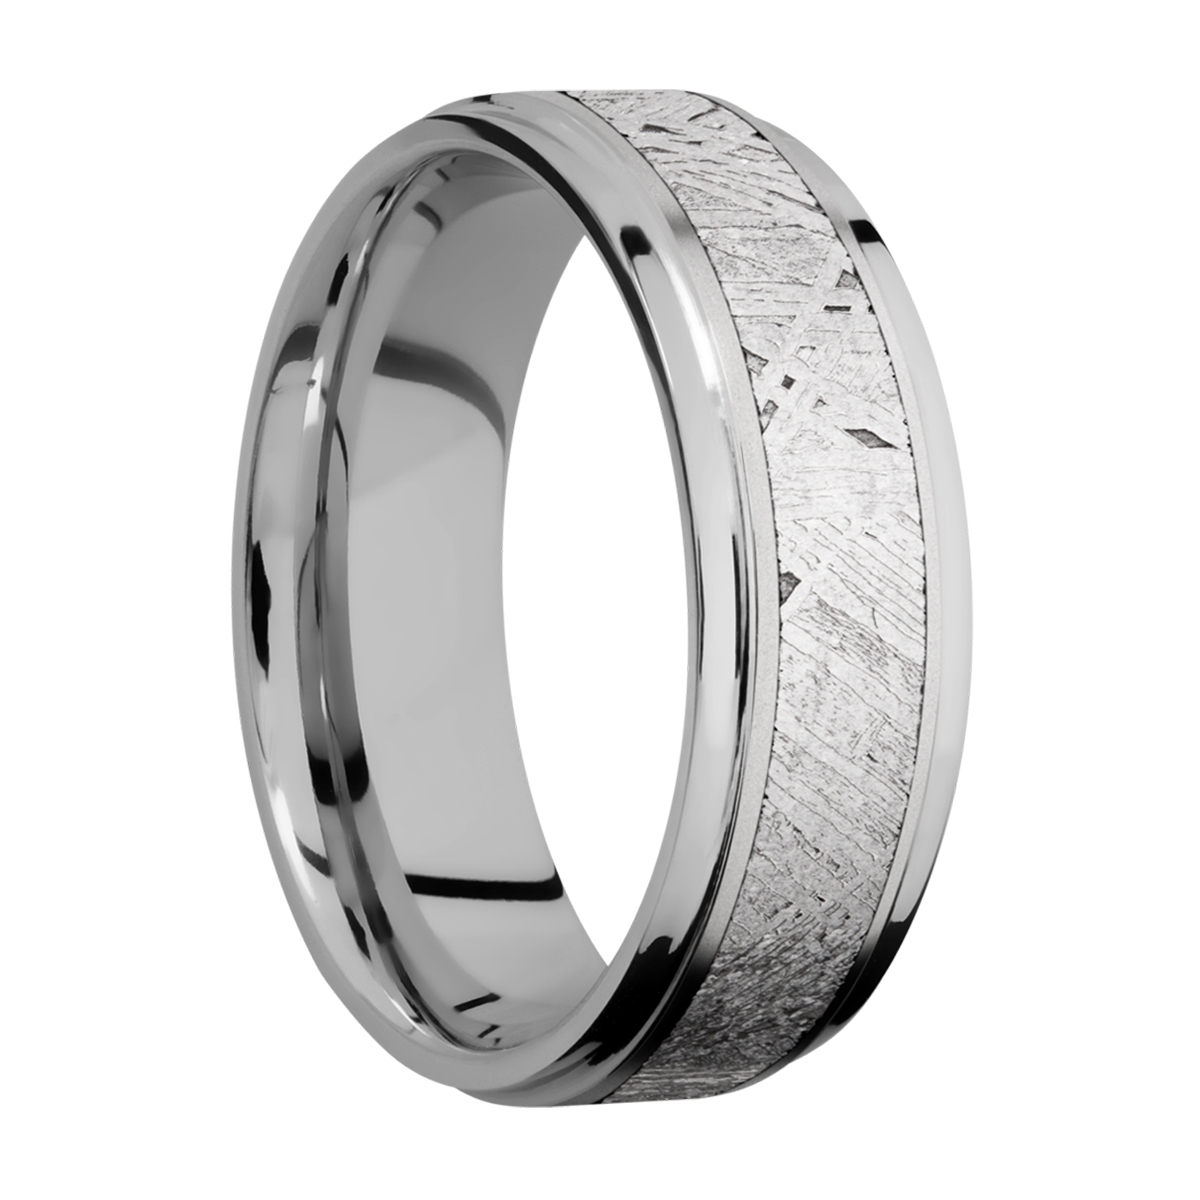 Lashbrook 7FGE14/METEORITE Titanium Wedding Ring or Band Alternative View 1